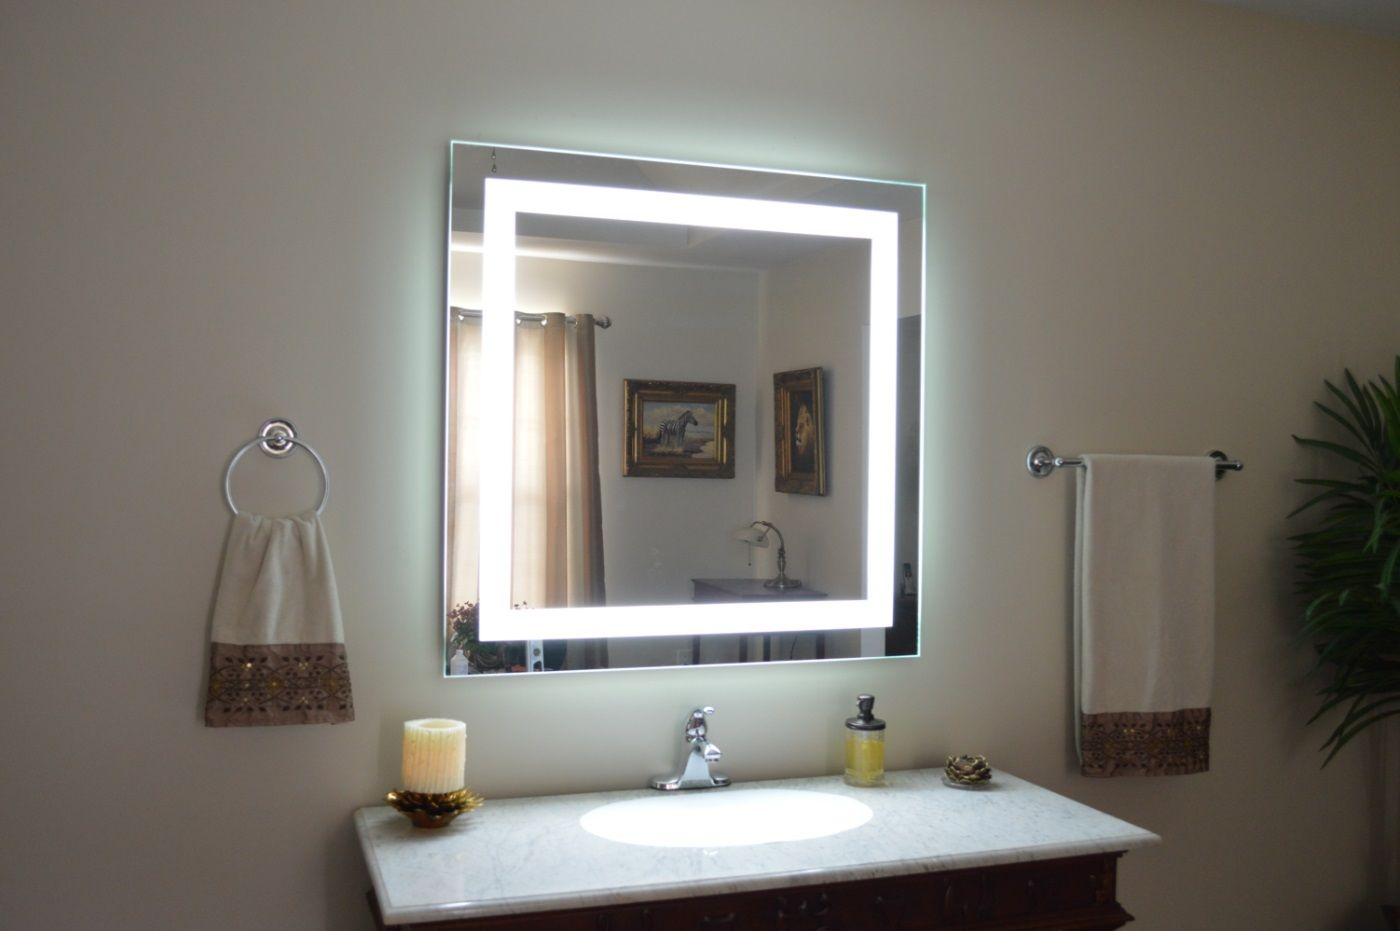 Lighted Wall Mirror: lighted vanity mirror wall photo - 3,Lighting